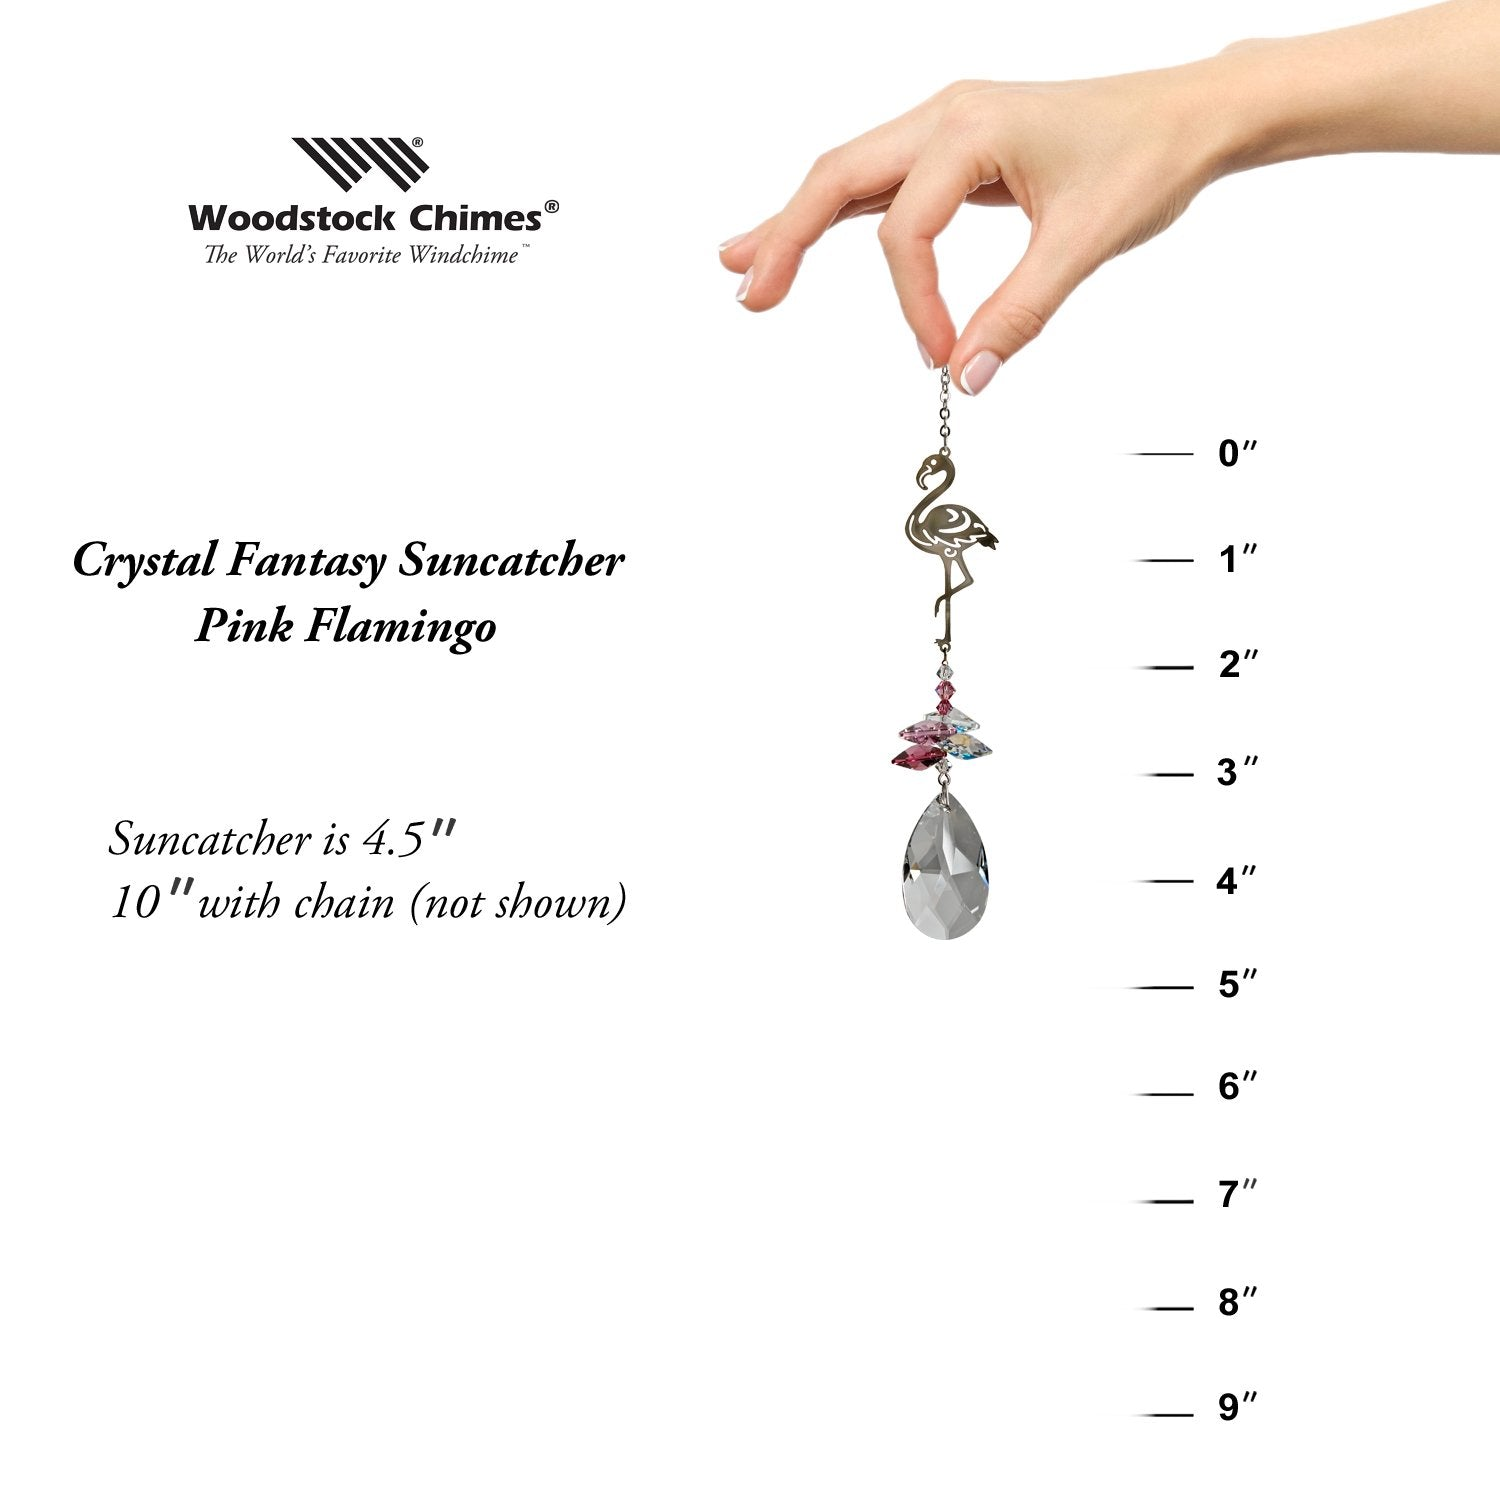 Crystal Fantasy Suncatcher - Pink Flamingo proportion image